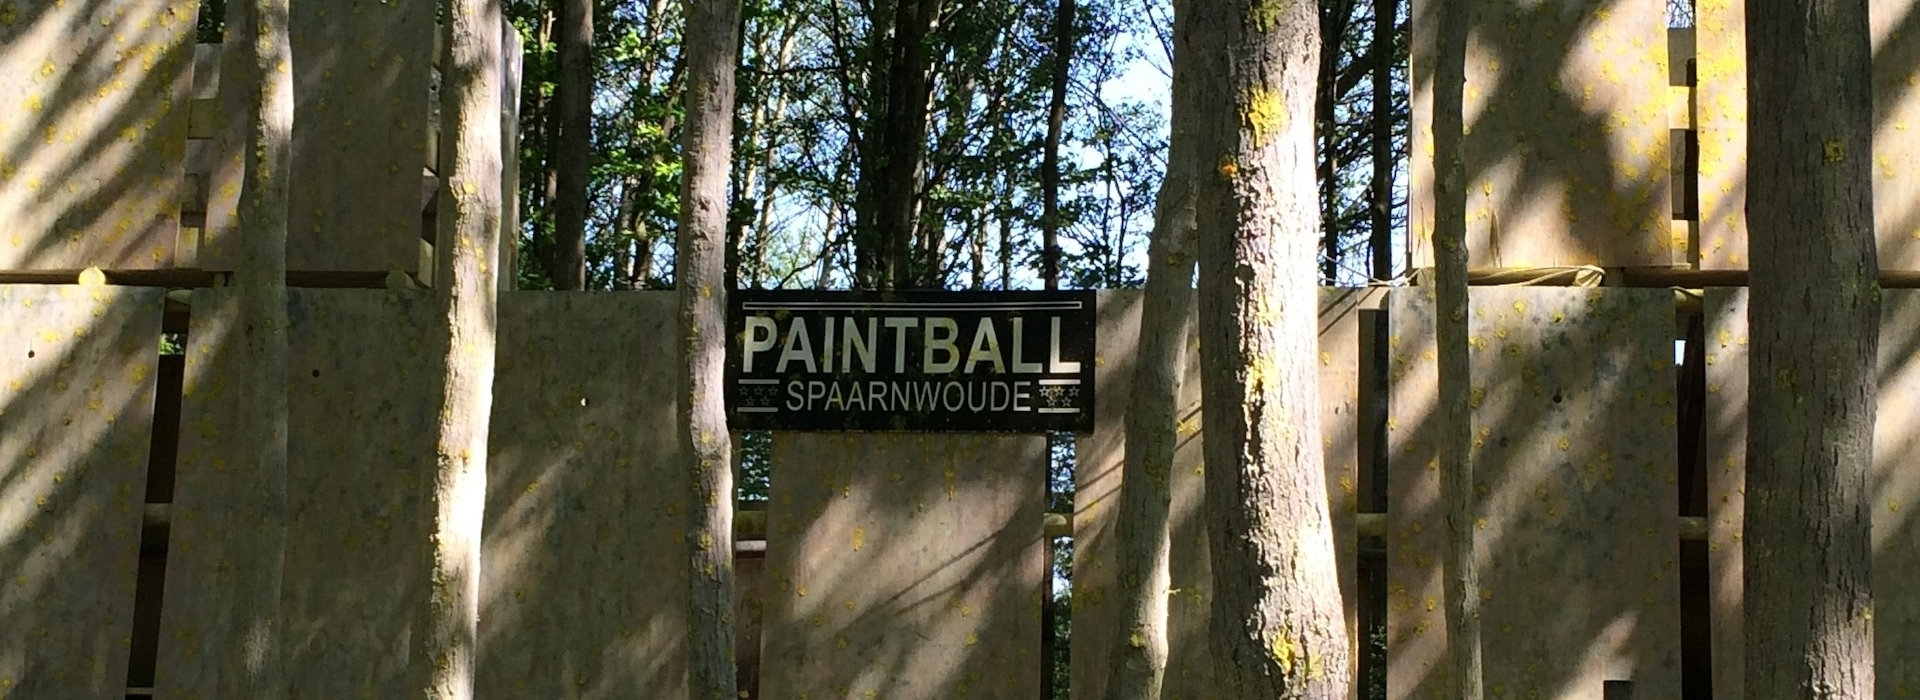 1469607097514696069150paintball-veld.jpg